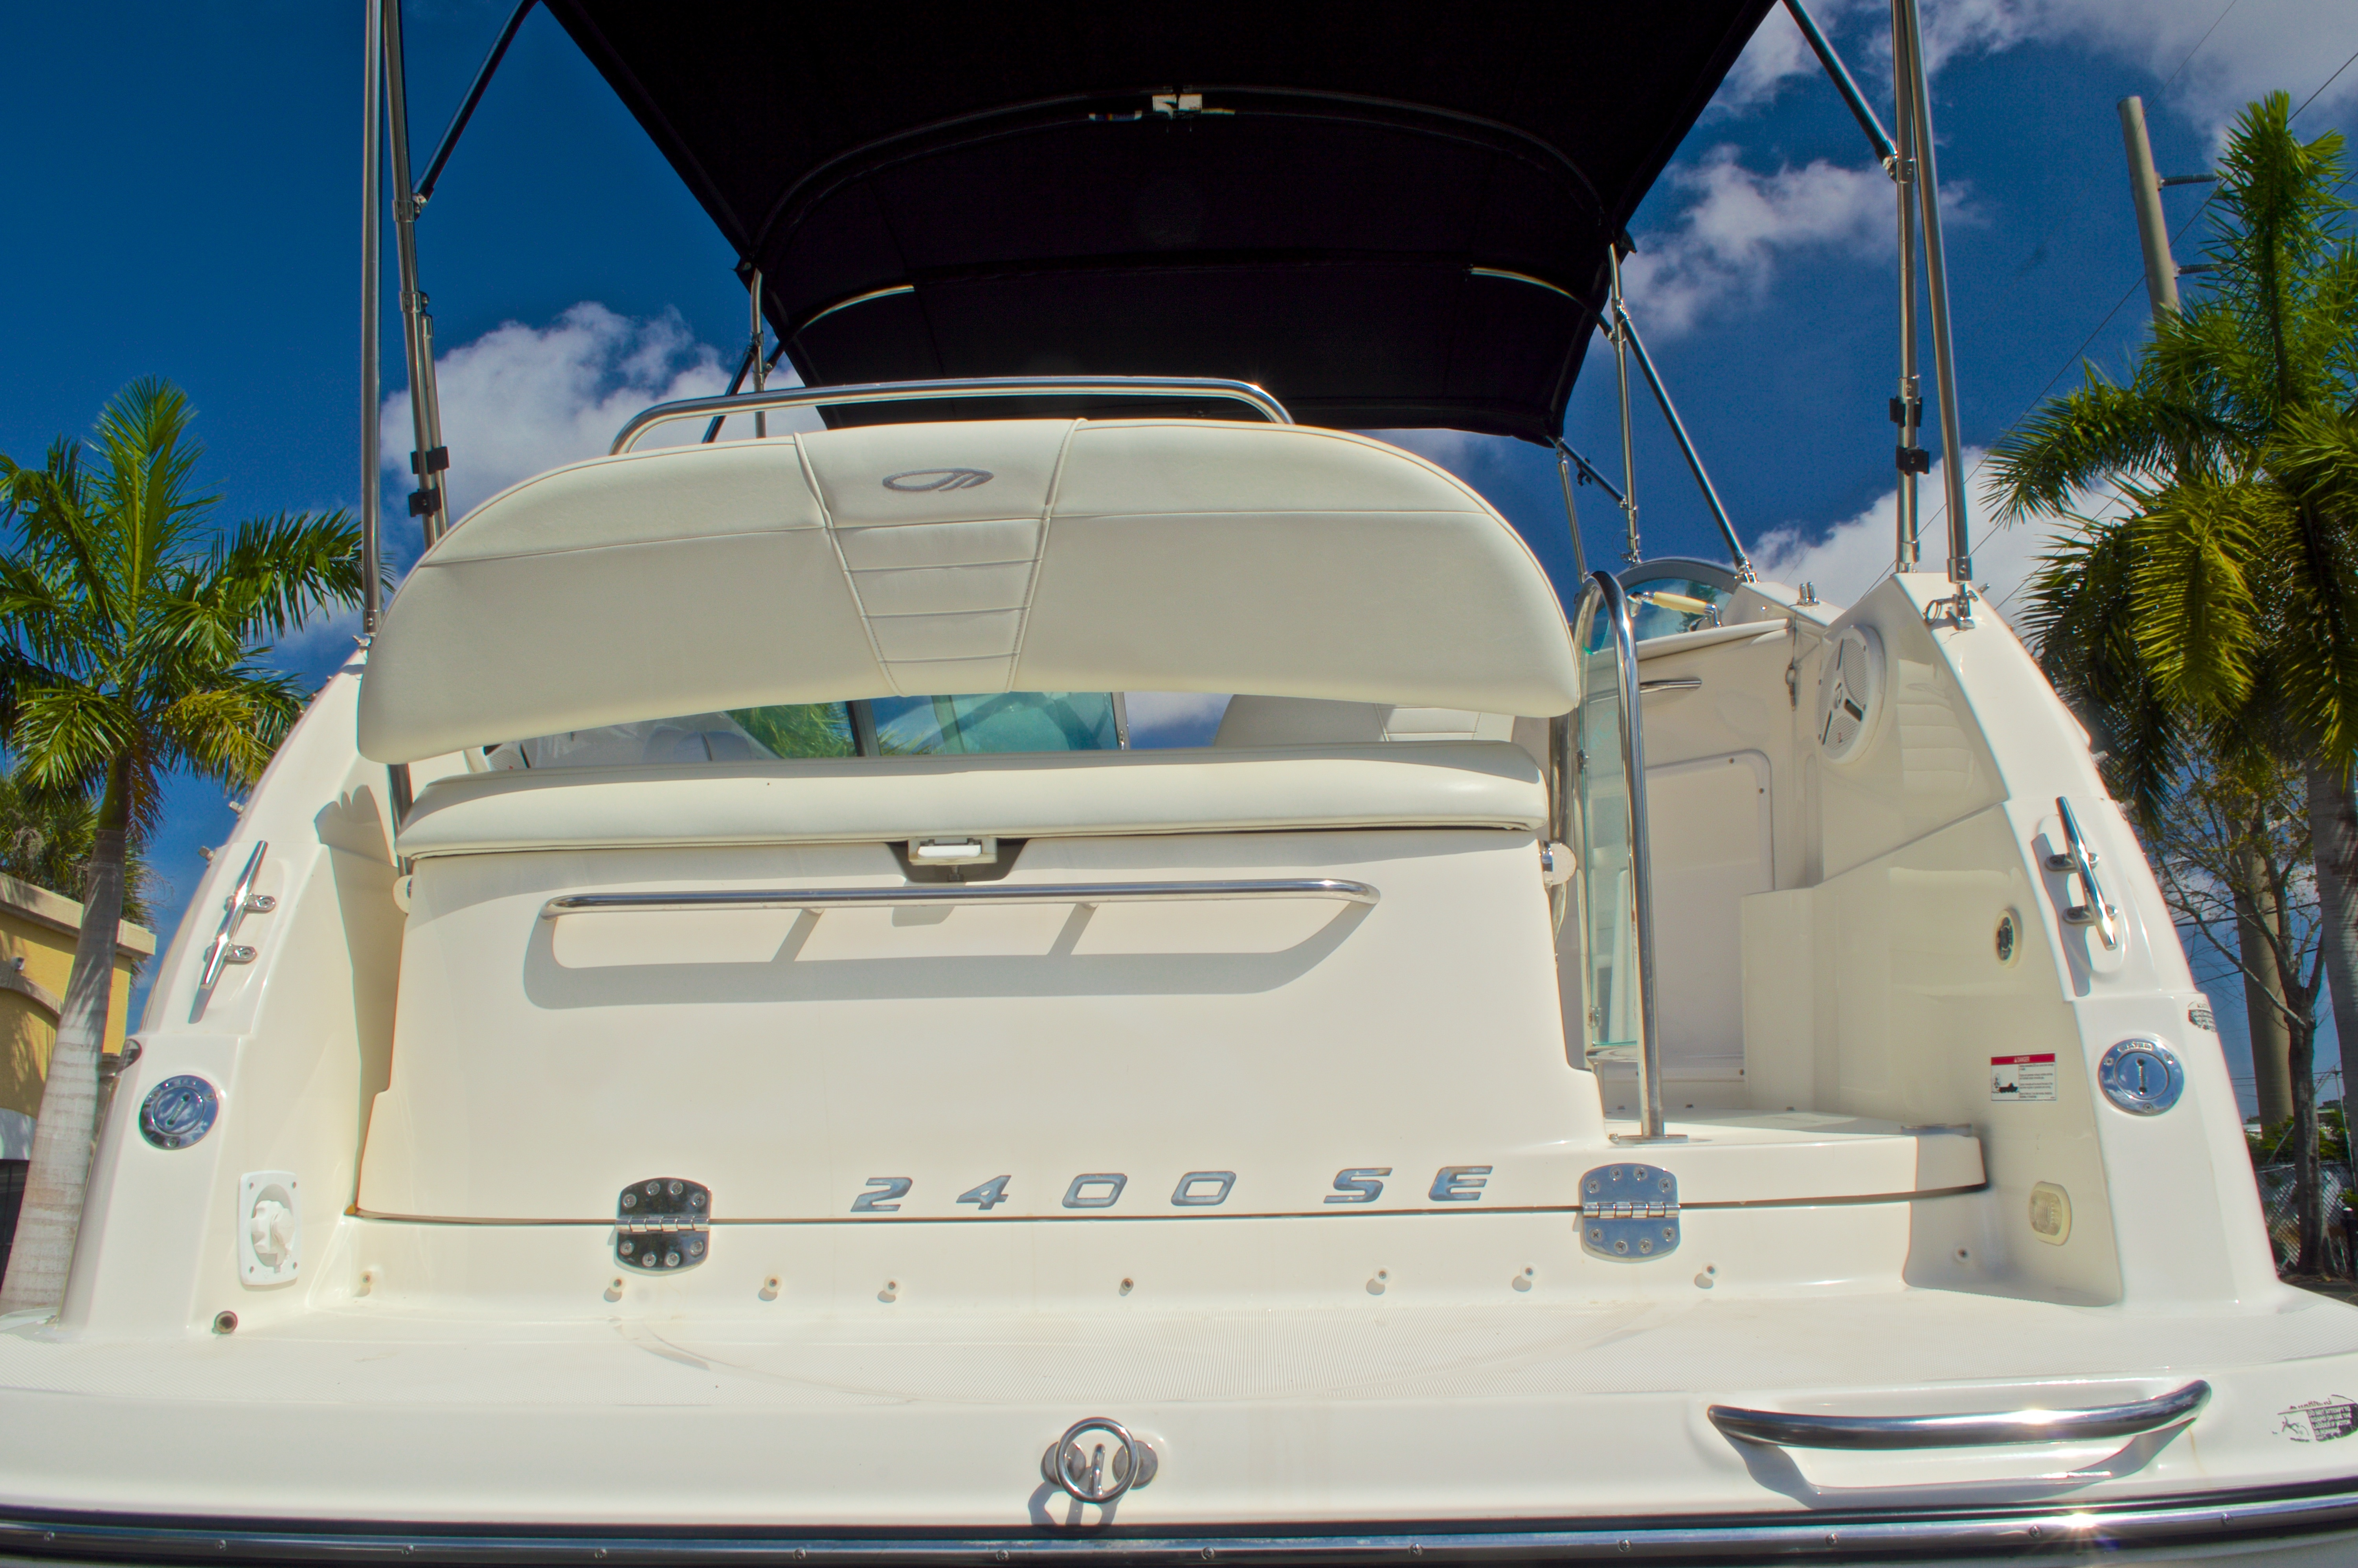 Thumbnail 10 for Used 2007 Maxum 2400 SE boat for sale in West Palm Beach, FL